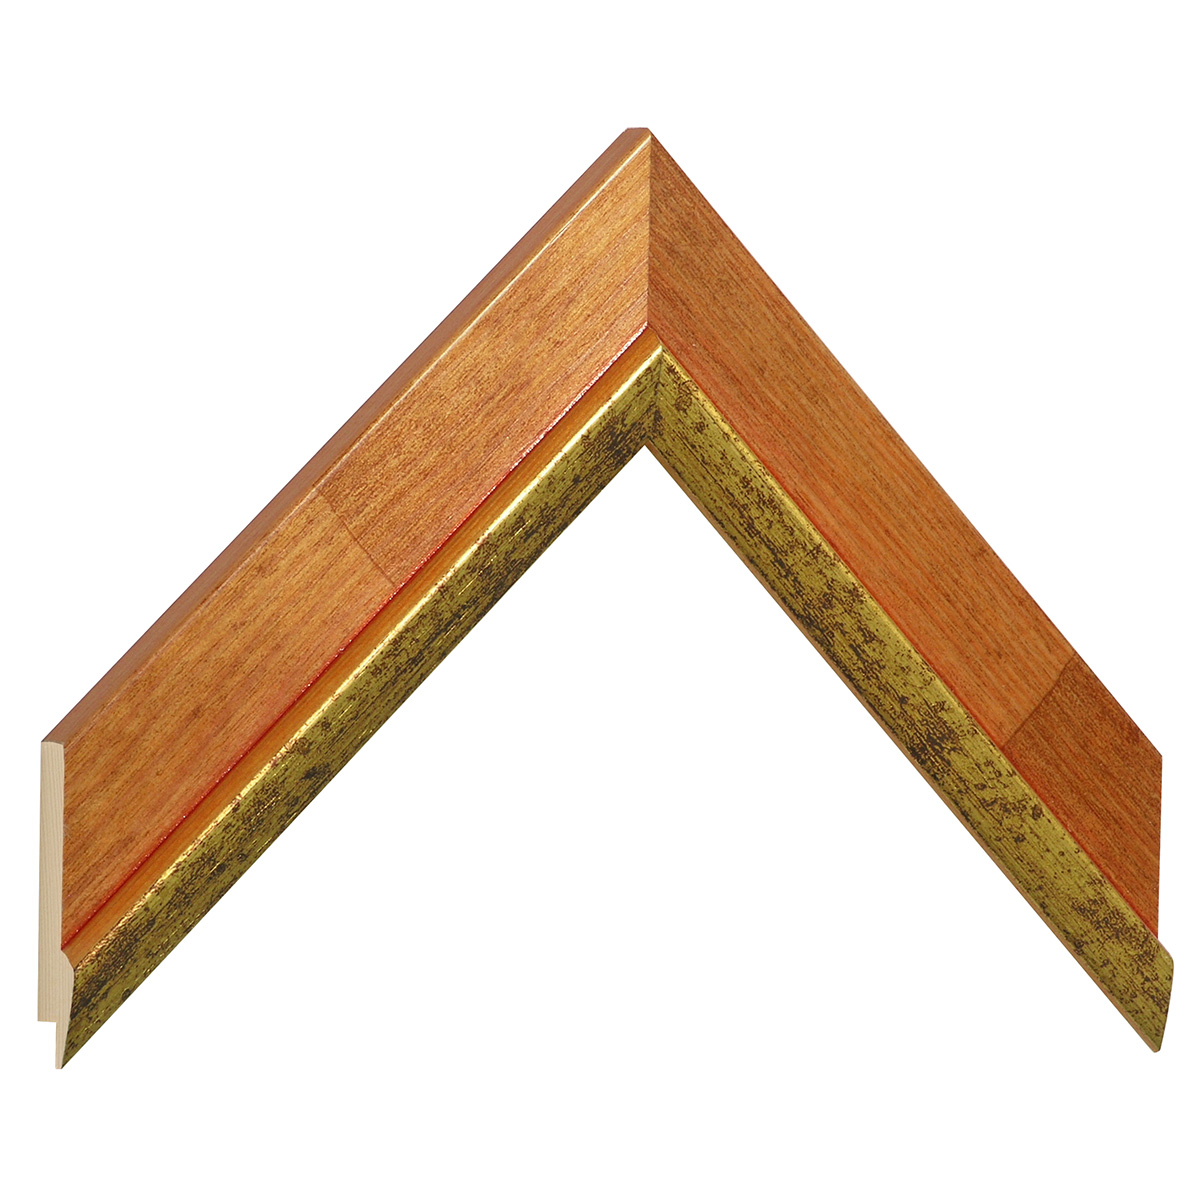 Moulding pine 39mm - cherry colour with gold edge